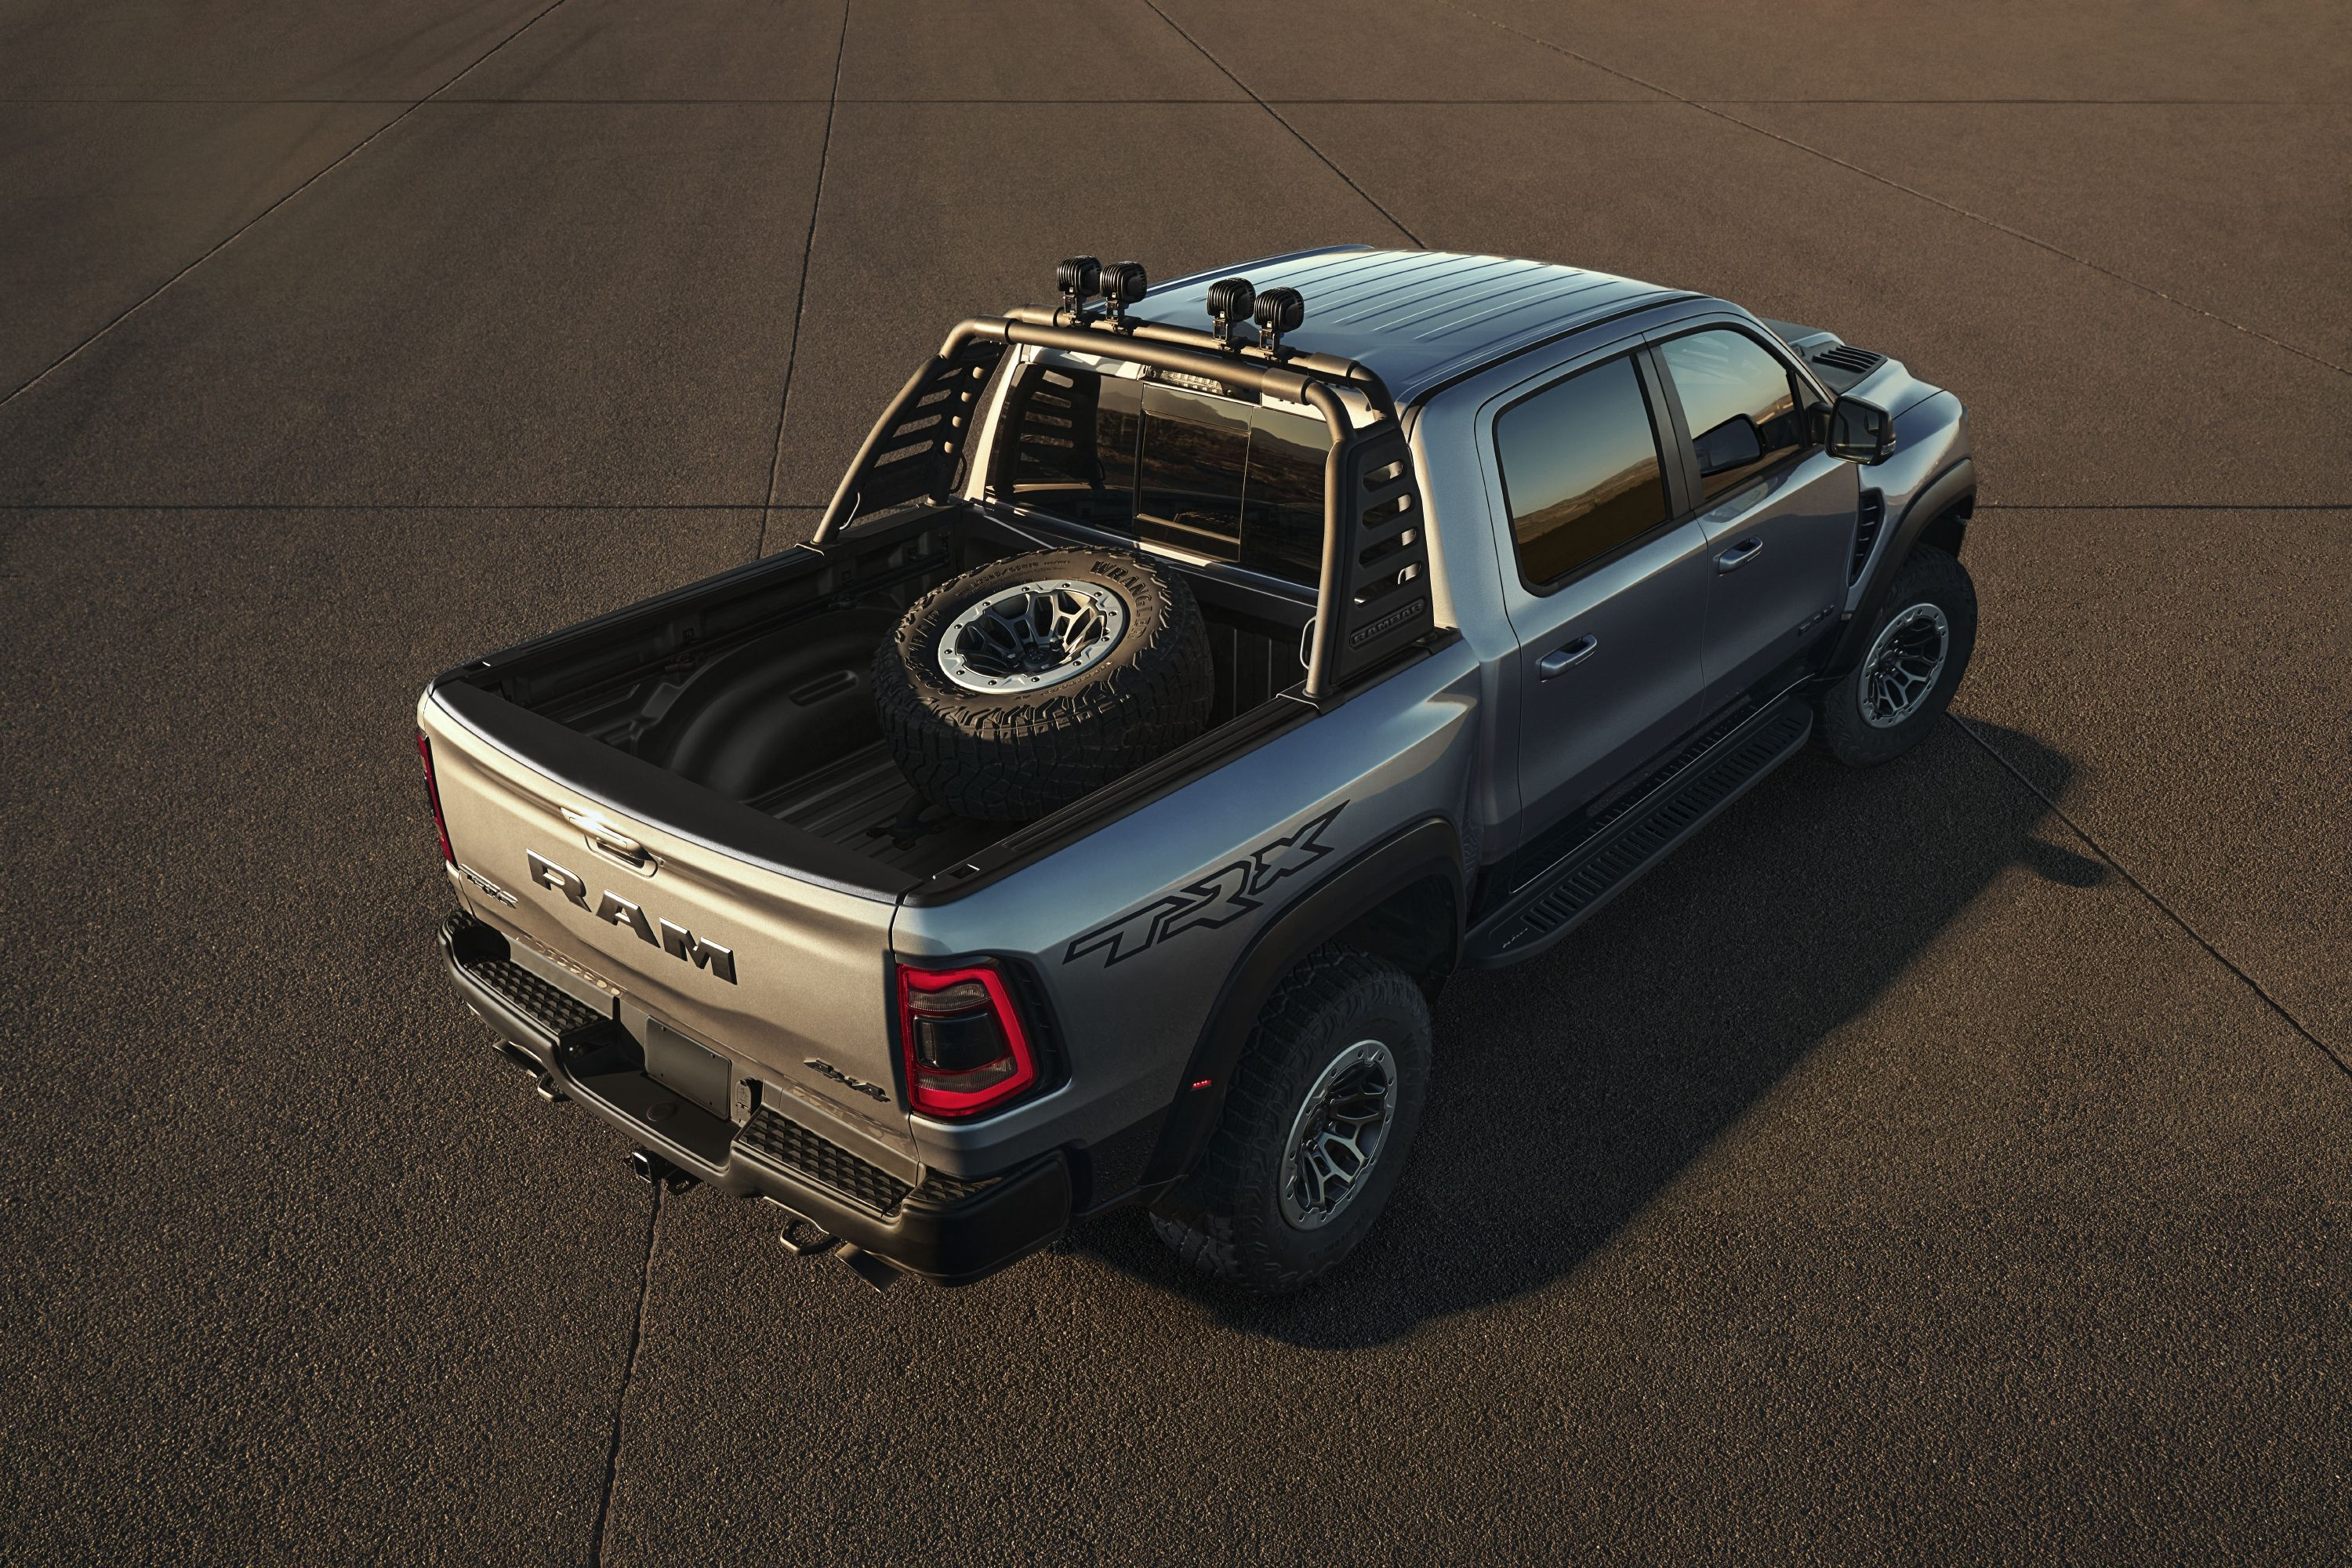 2021 Ram 1500 Trx Gets Even More Capable With Mopar Accessories